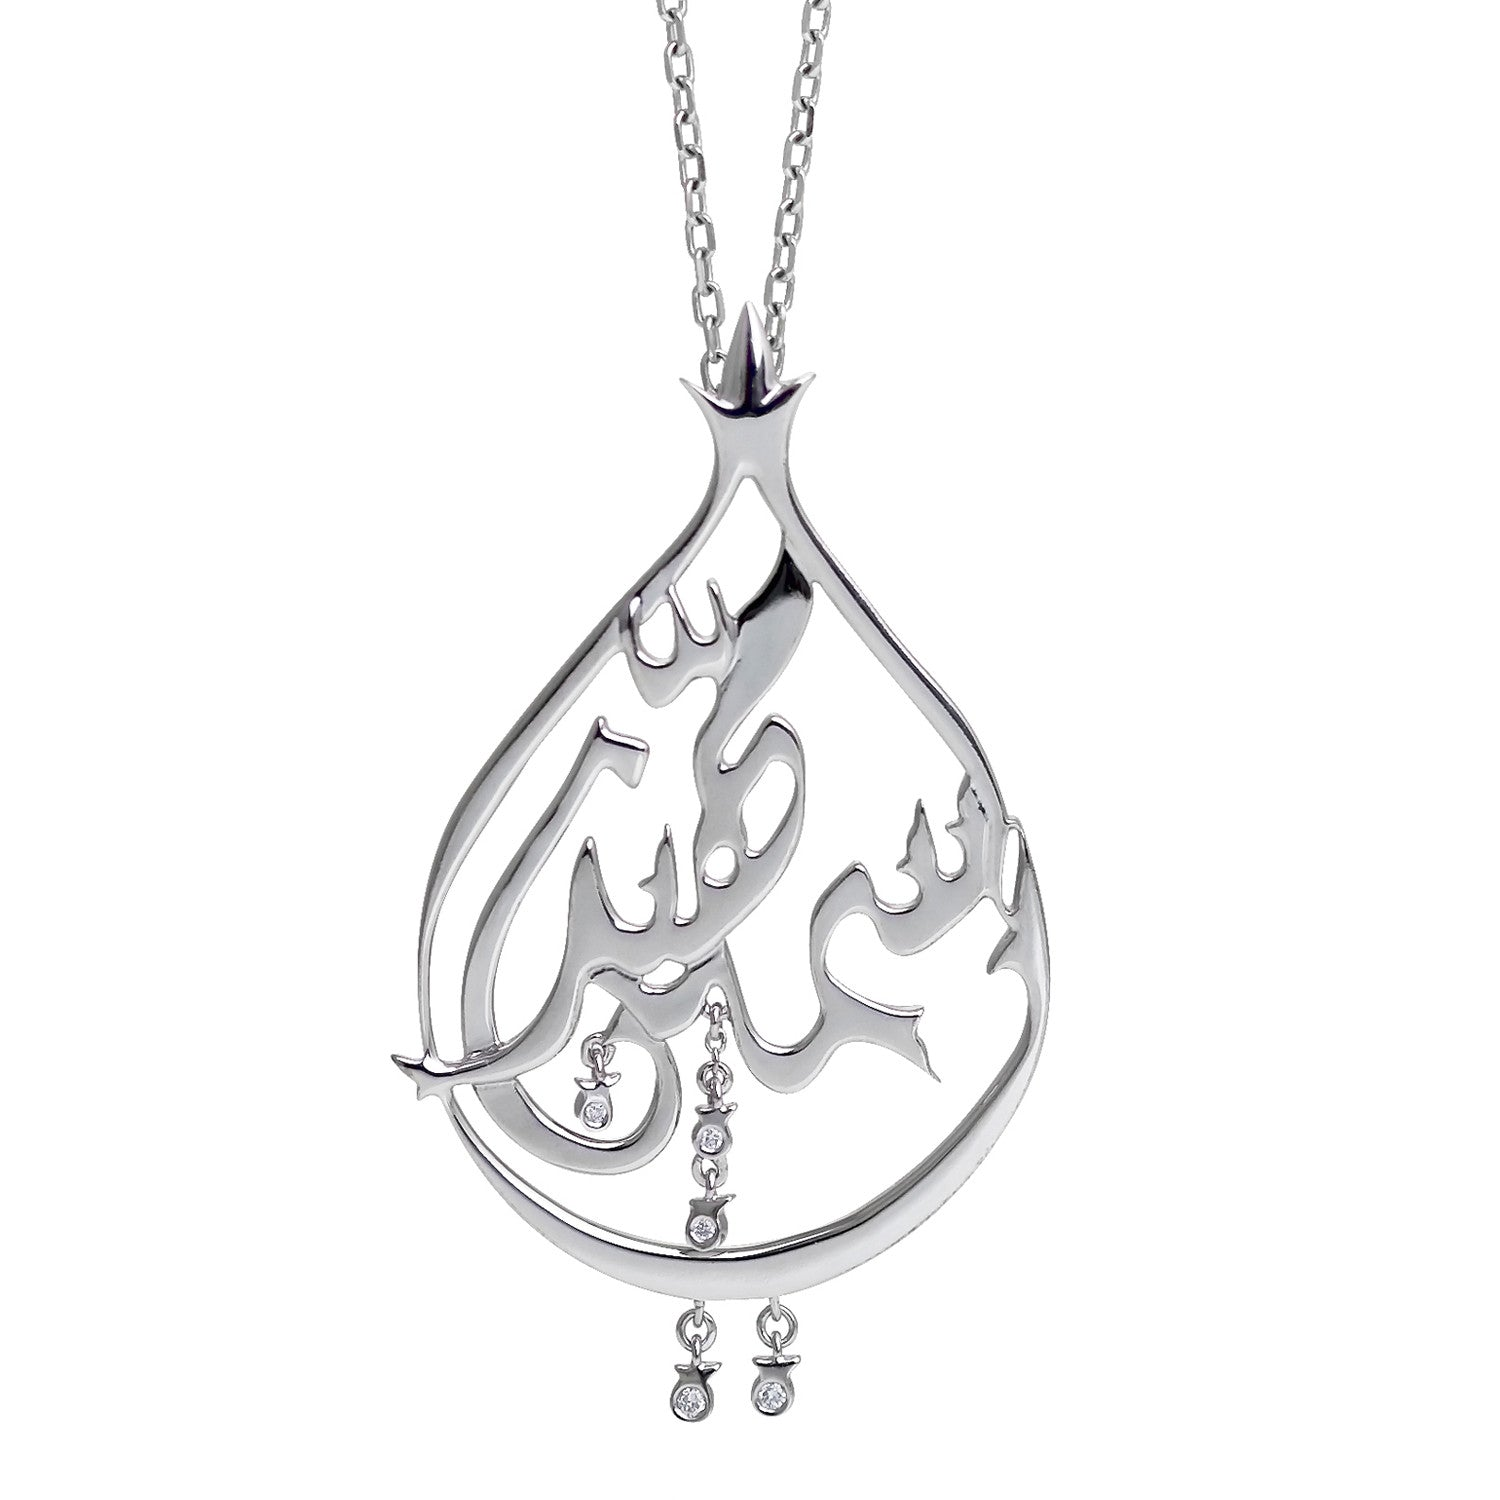 Bespoke Jewellery - Emblem Diamond White Gold Pendant - Arabel Lebrusan